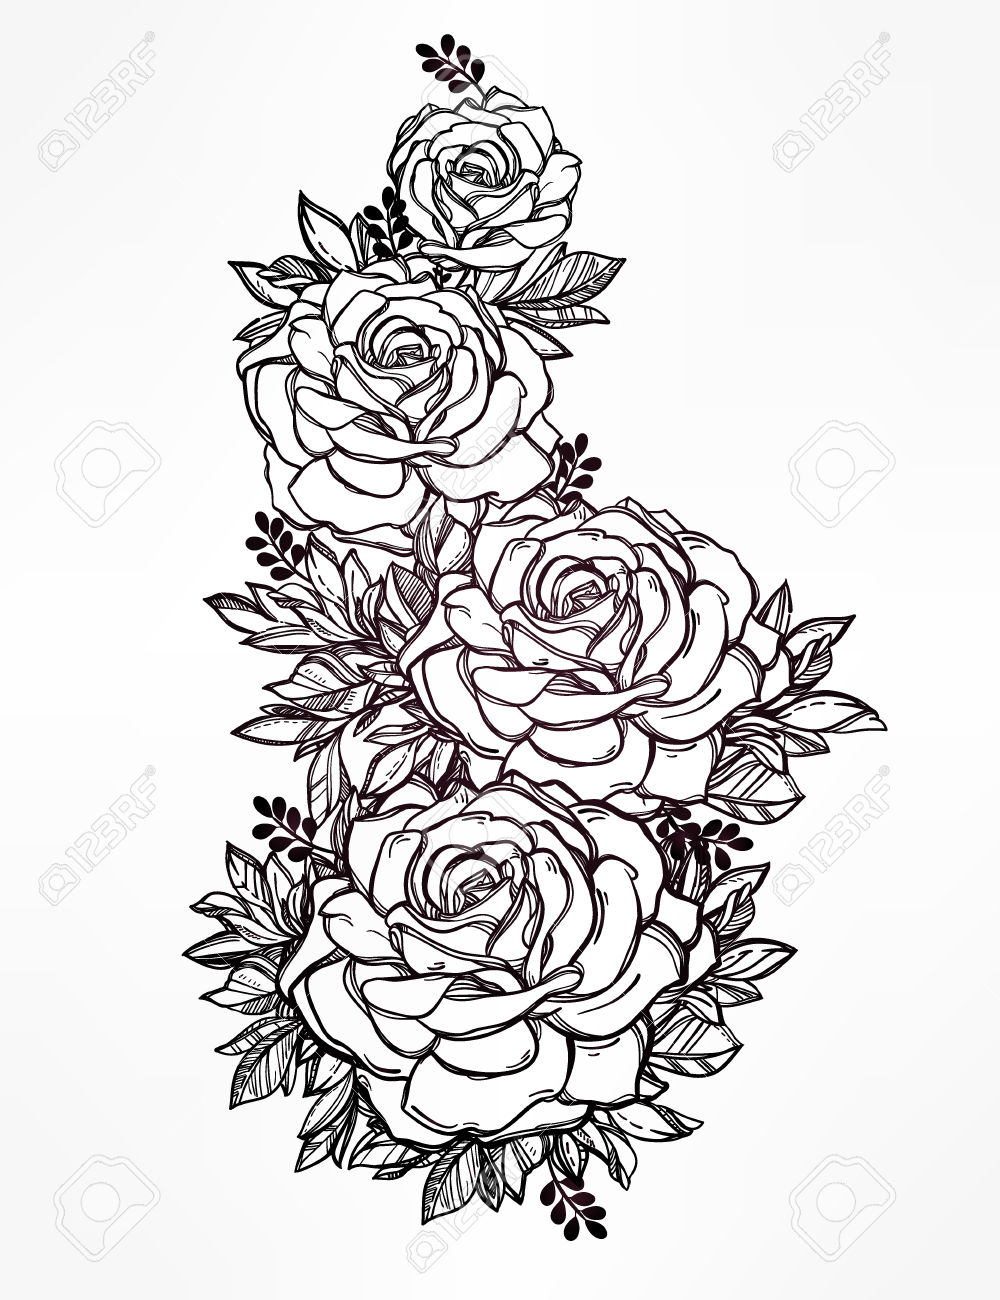 Detailed Rose Drawing